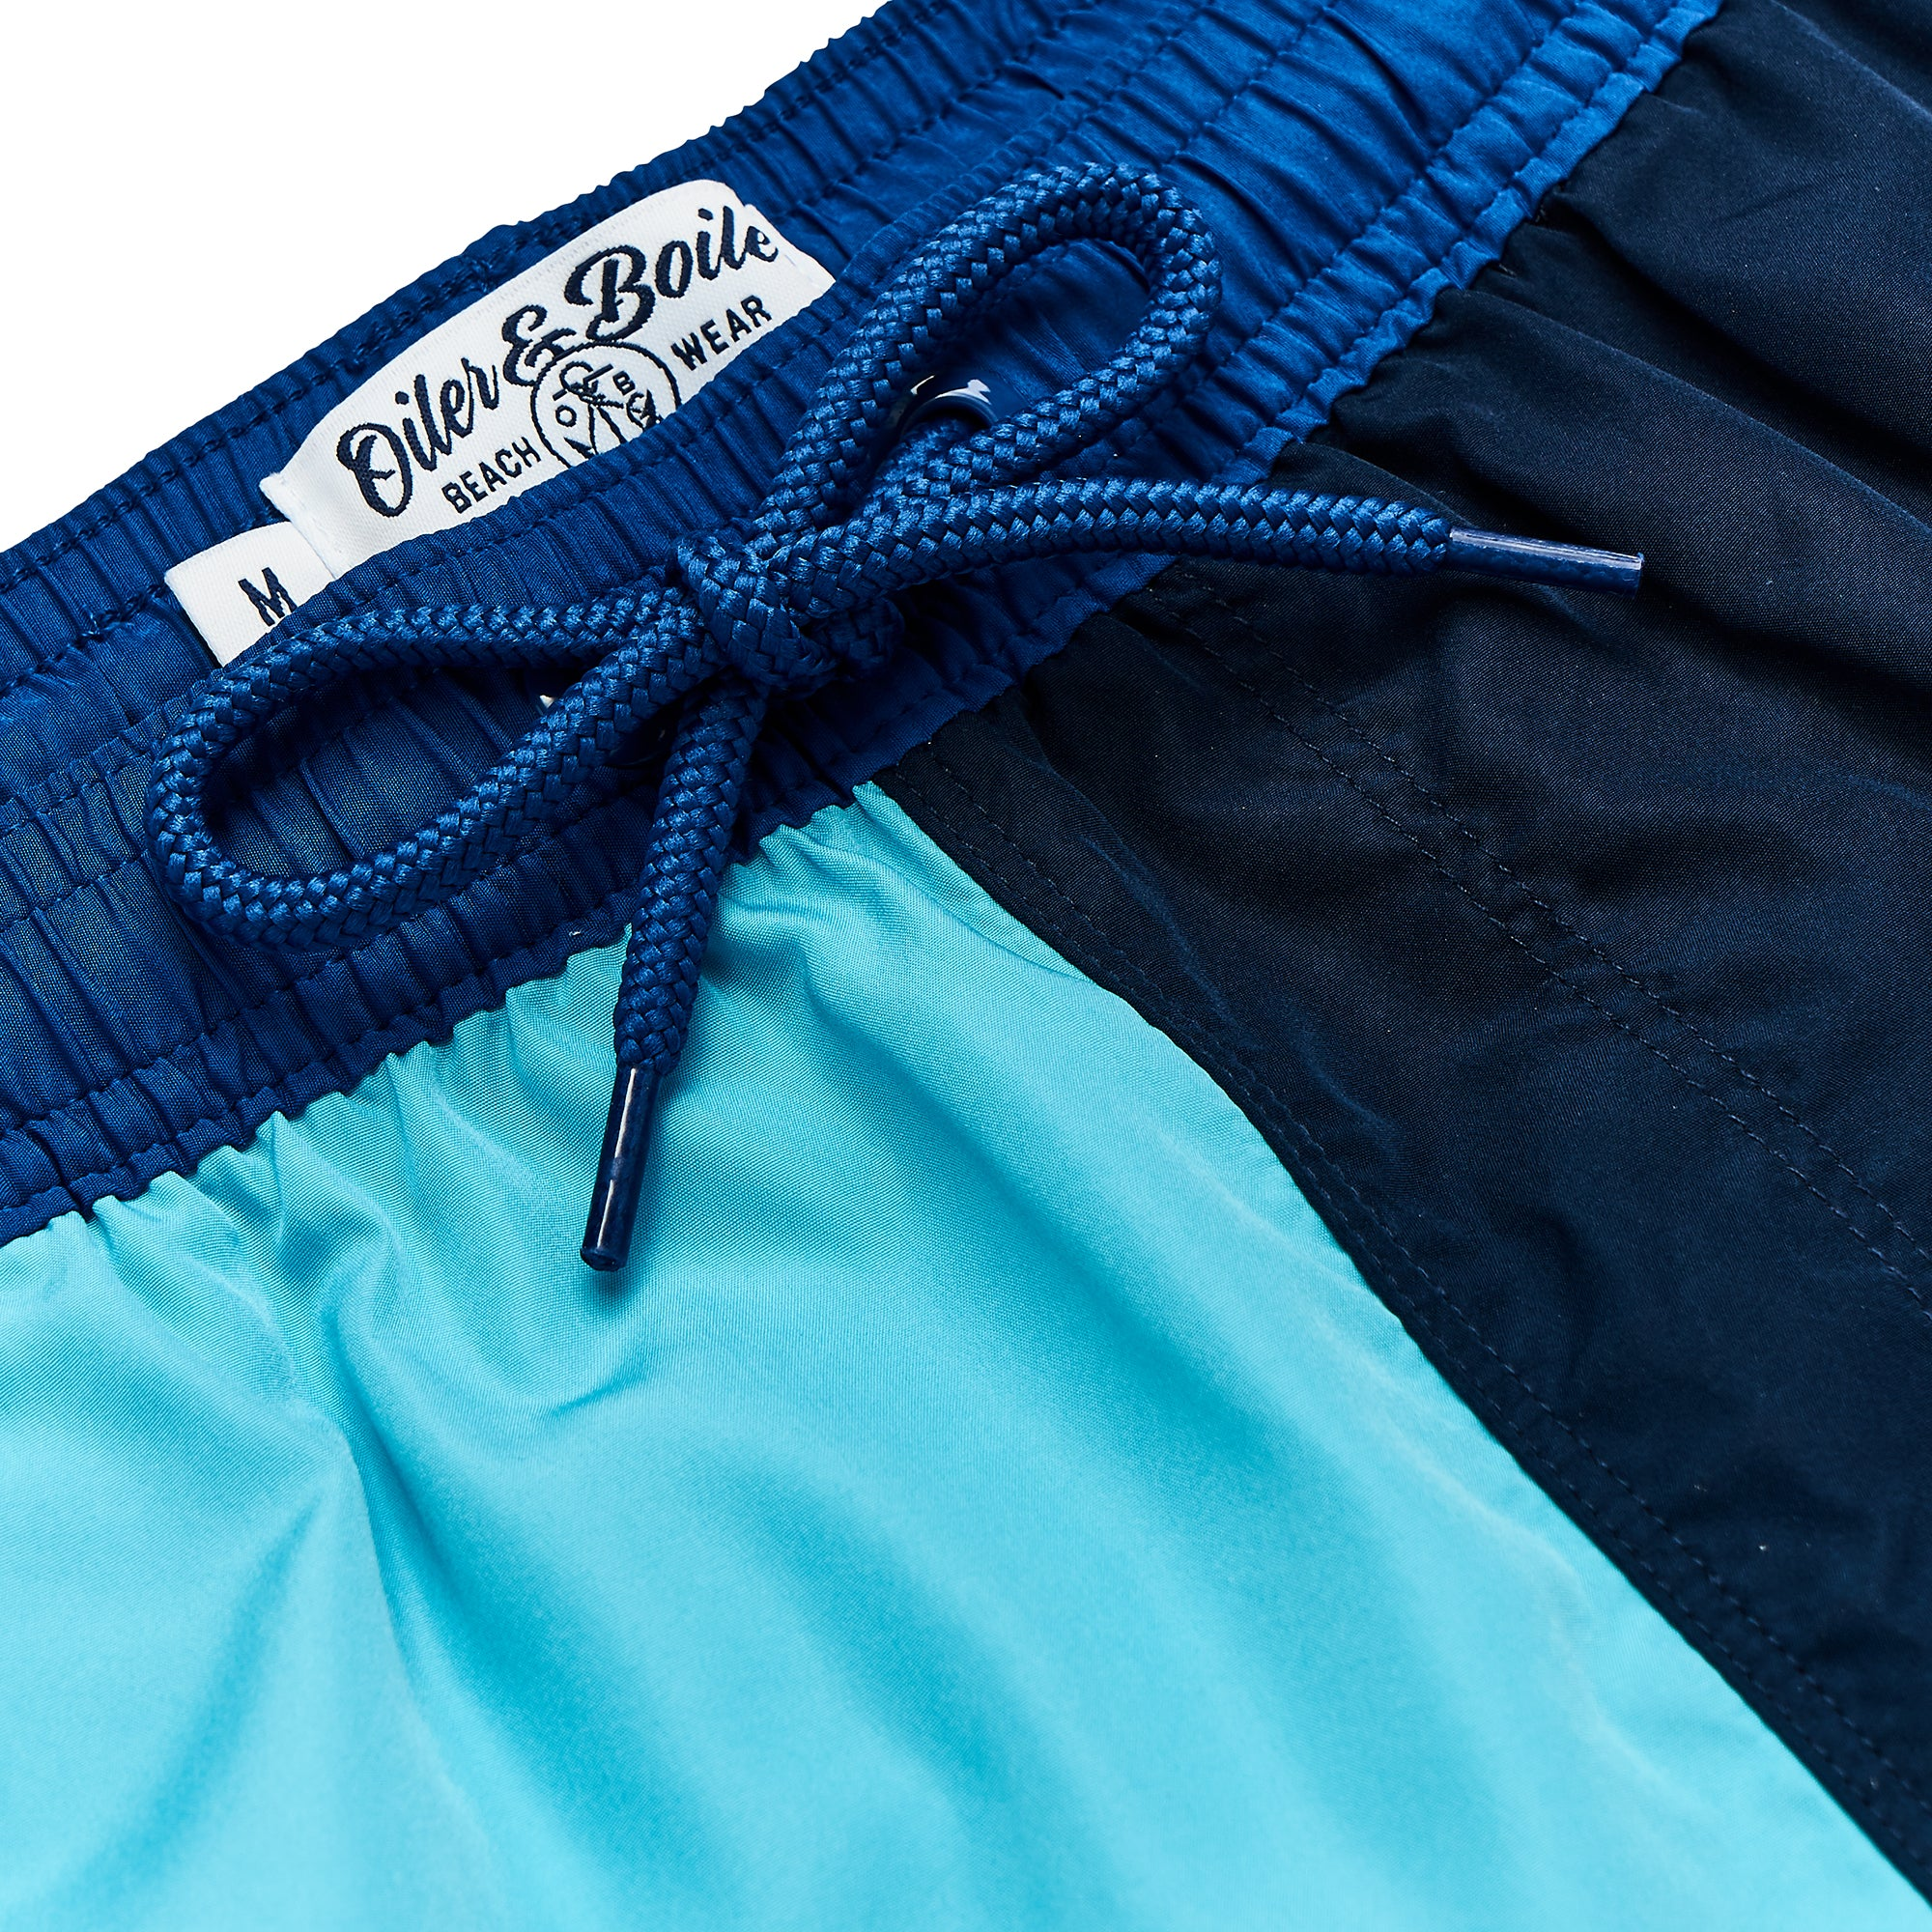 Aquatic Blue & Navy Contrast Swim Short, Shorter Length